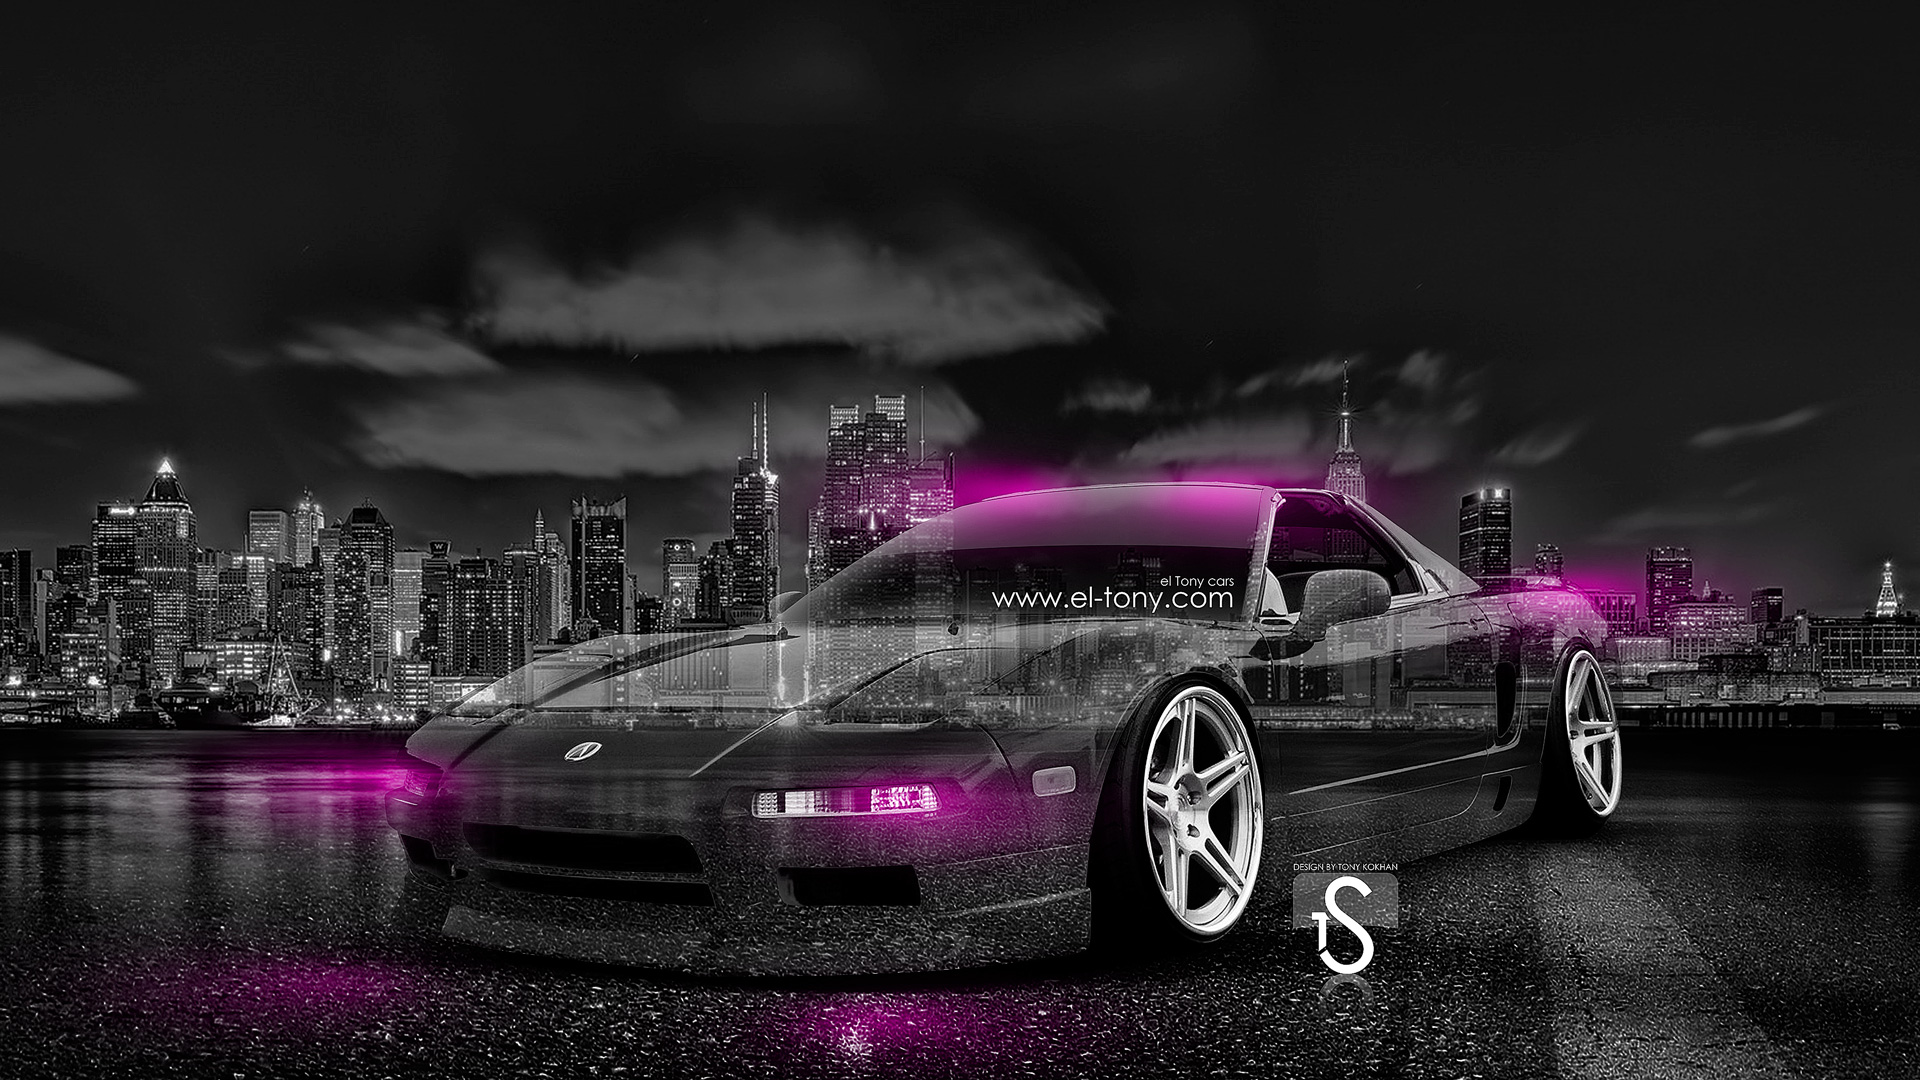 Ordinaire Honda NSX JDM Crystal City Car 2014 Pink